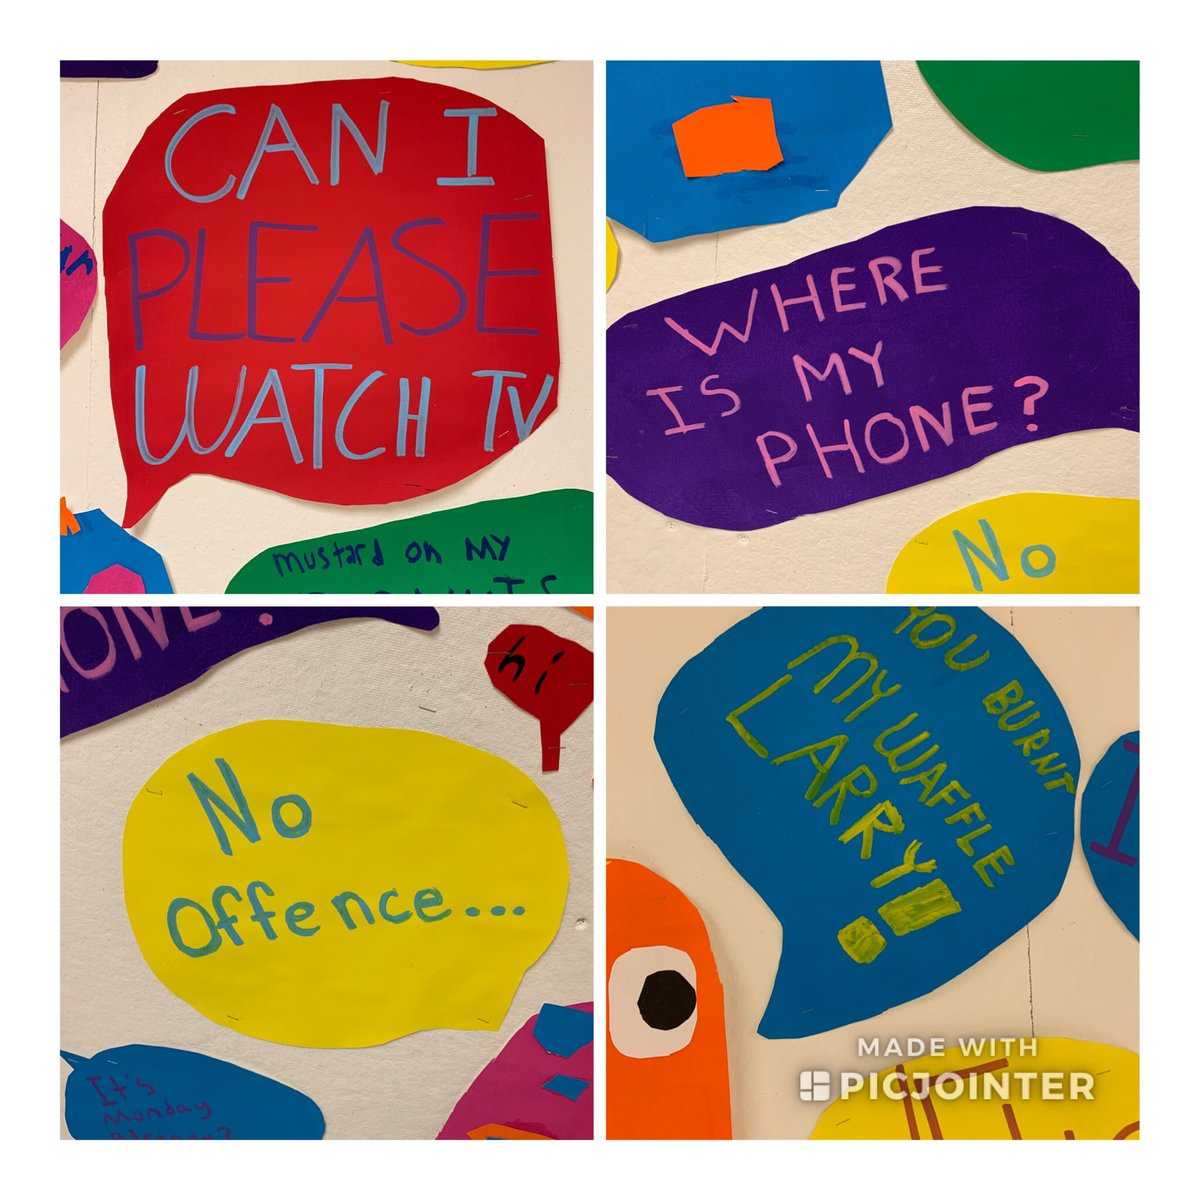 """More """"chatter"""" at Glebe <a target='_blank' href='http://twitter.com/glebepta'>@glebepta</a> <a target='_blank' href='http://twitter.com/APSArts'>@APSArts</a> <a target='_blank' href='http://twitter.com/APSVirginia'>@APSVirginia</a> <a target='_blank' href='http://twitter.com/GlebeVolunteers'>@GlebeVolunteers</a> <a target='_blank' href='http://search.twitter.com/search?q=GlebeEagles'><a target='_blank' href='https://twitter.com/hashtag/GlebeEagles?src=hash'>#GlebeEagles</a></a> <a target='_blank' href='https://t.co/5A5rLAV28q'>https://t.co/5A5rLAV28q</a>"""